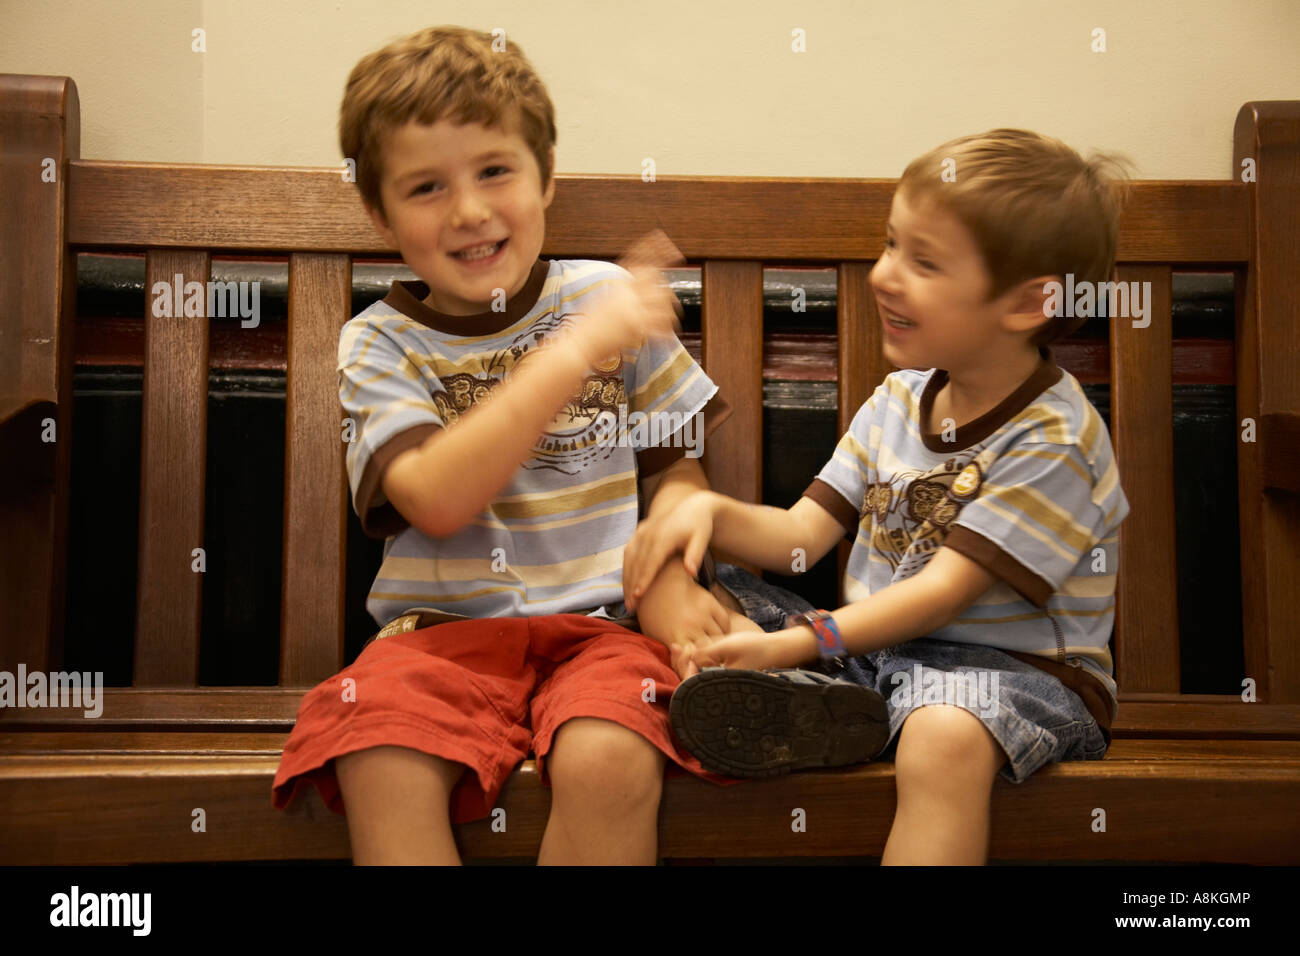 Two Young Boys Children Brothers Wearing Shorts And T Shirts Sitting On A Bench Playing Fighting Laughing